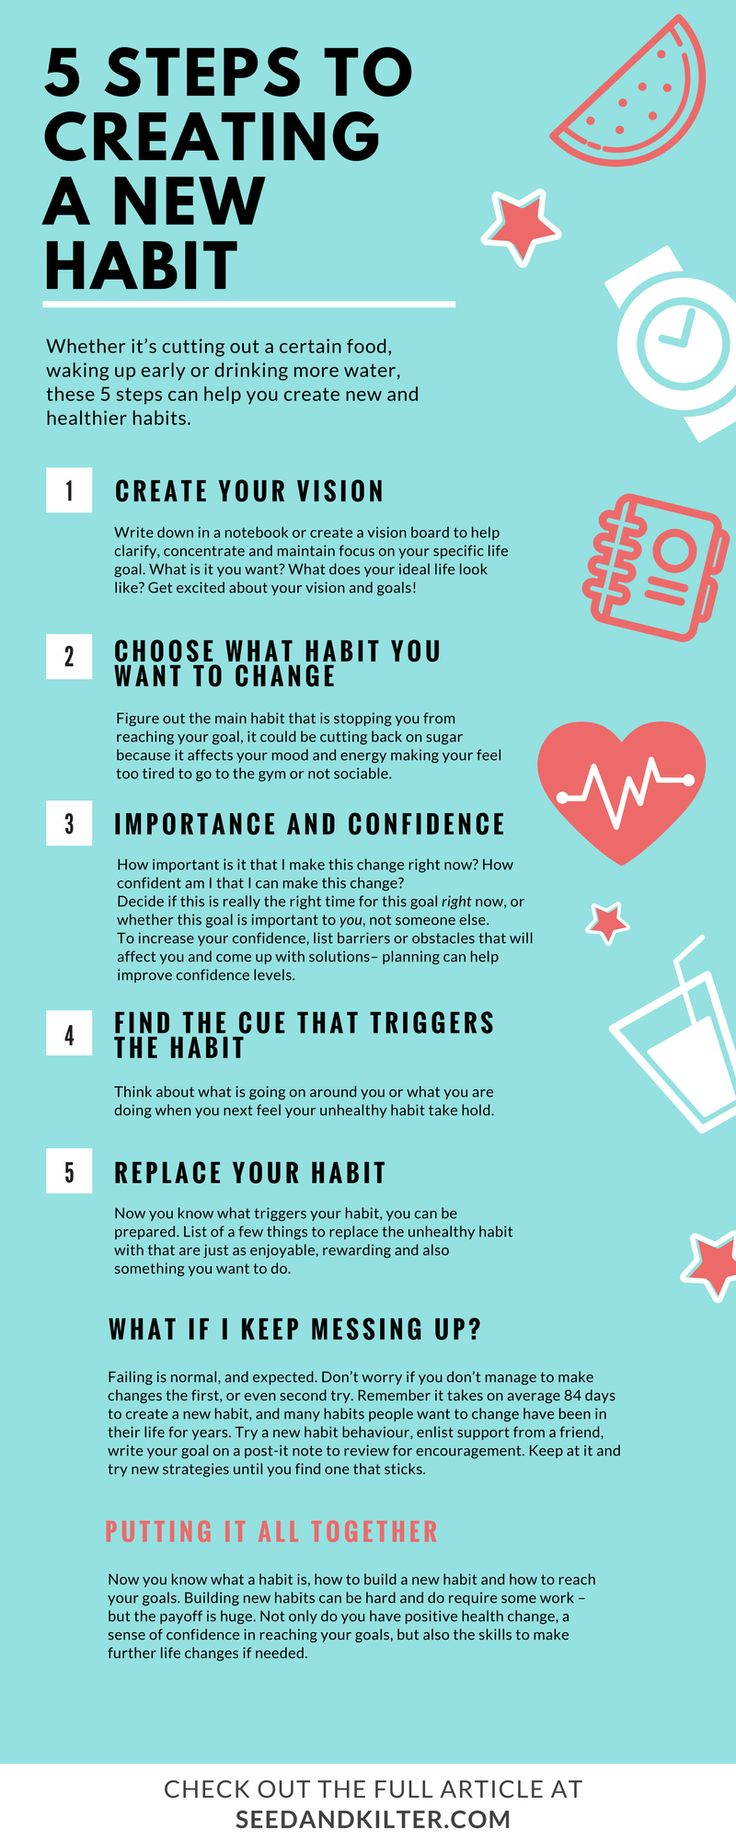 Want to wake up early to go to the gym or stop eating sugar after a meal.. follow these 5 steps to creating a new habit.  Check out the full article at seedandkilter.com